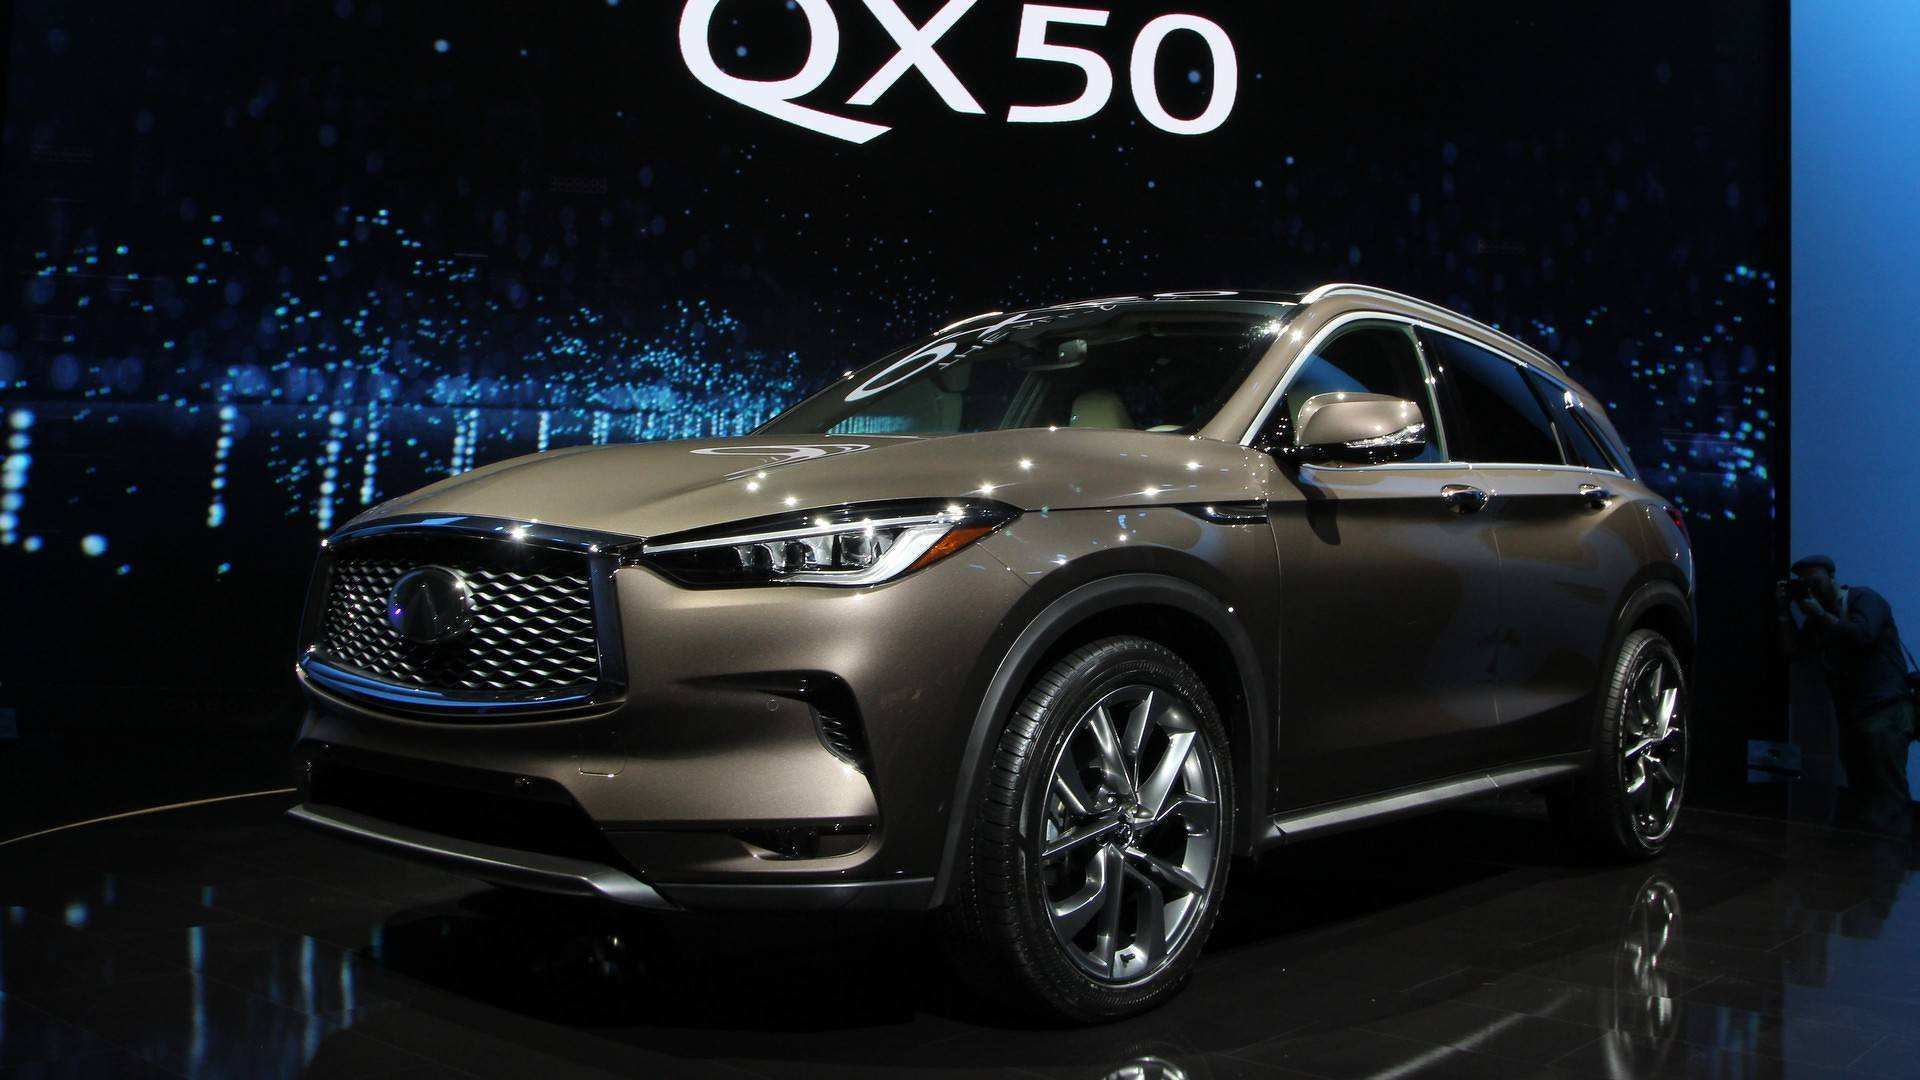 44 All New 2019 Infiniti Qx50 Dimensions Price